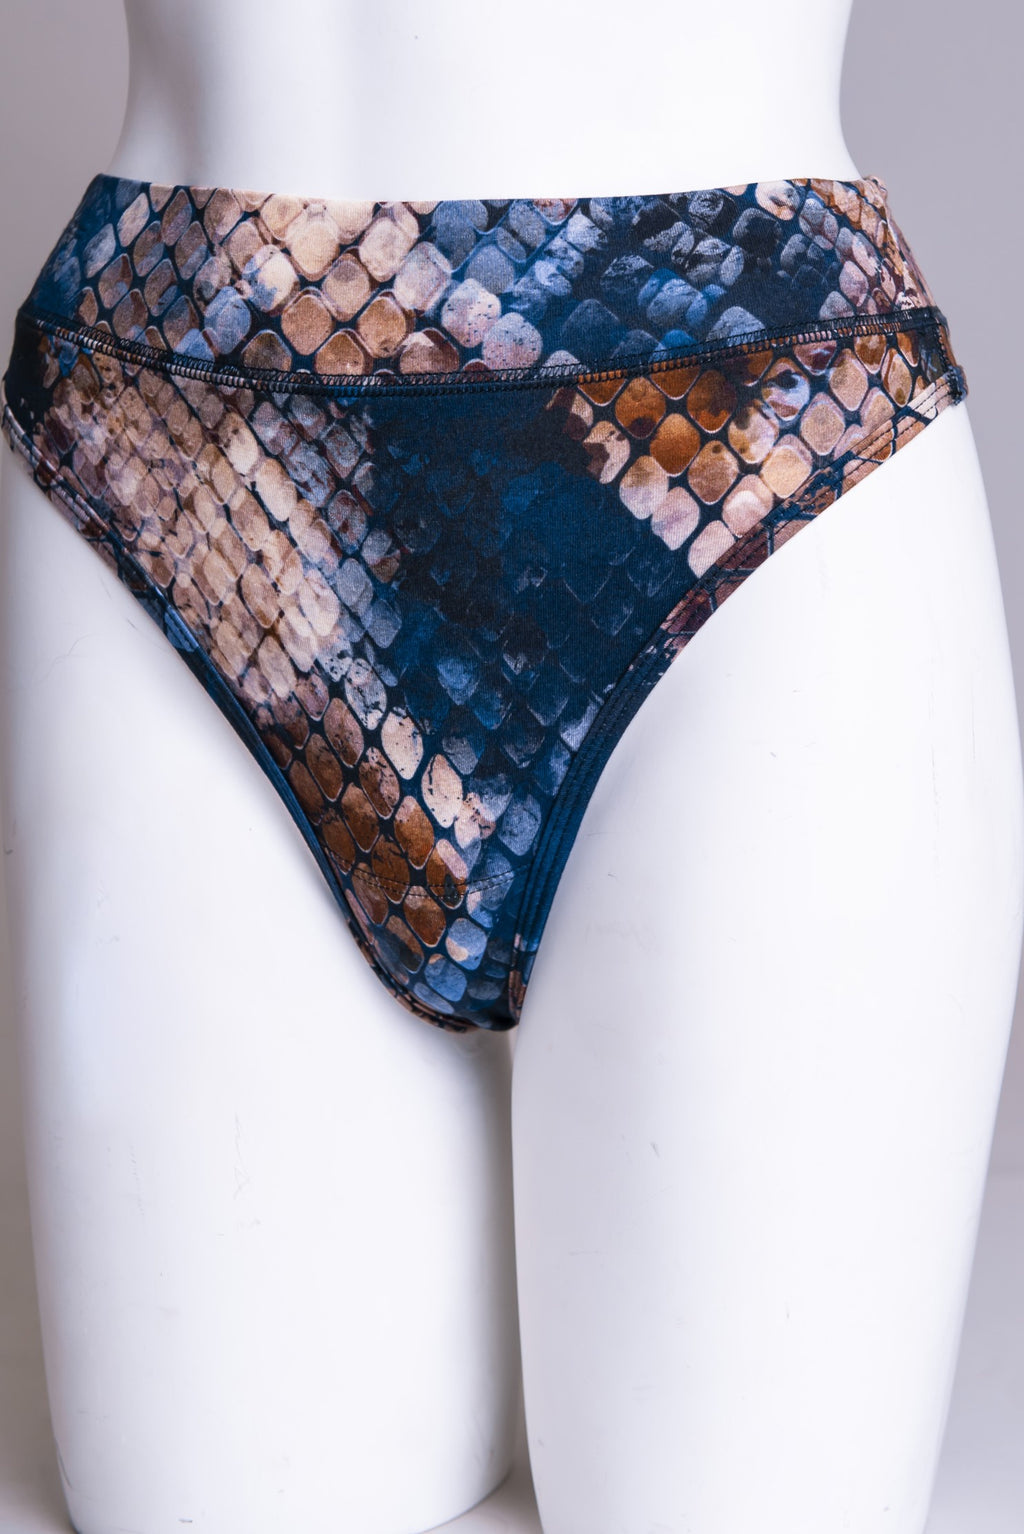 La Thong, Snakeskin, Bamboo - Blue Sky Clothing Co